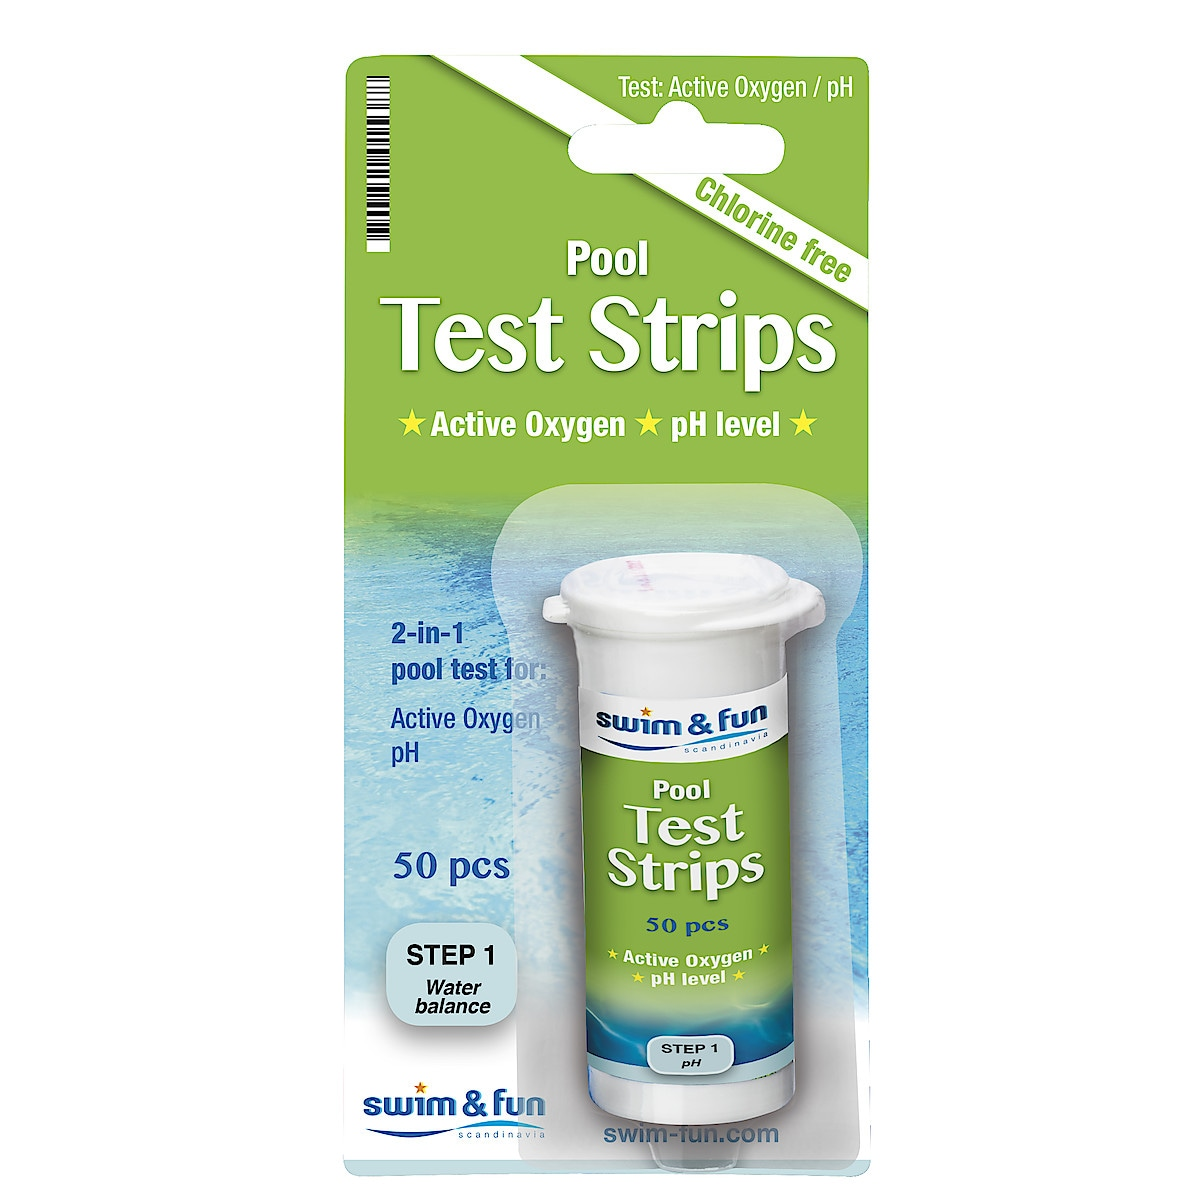 Active Oxygen and pH Test Strips